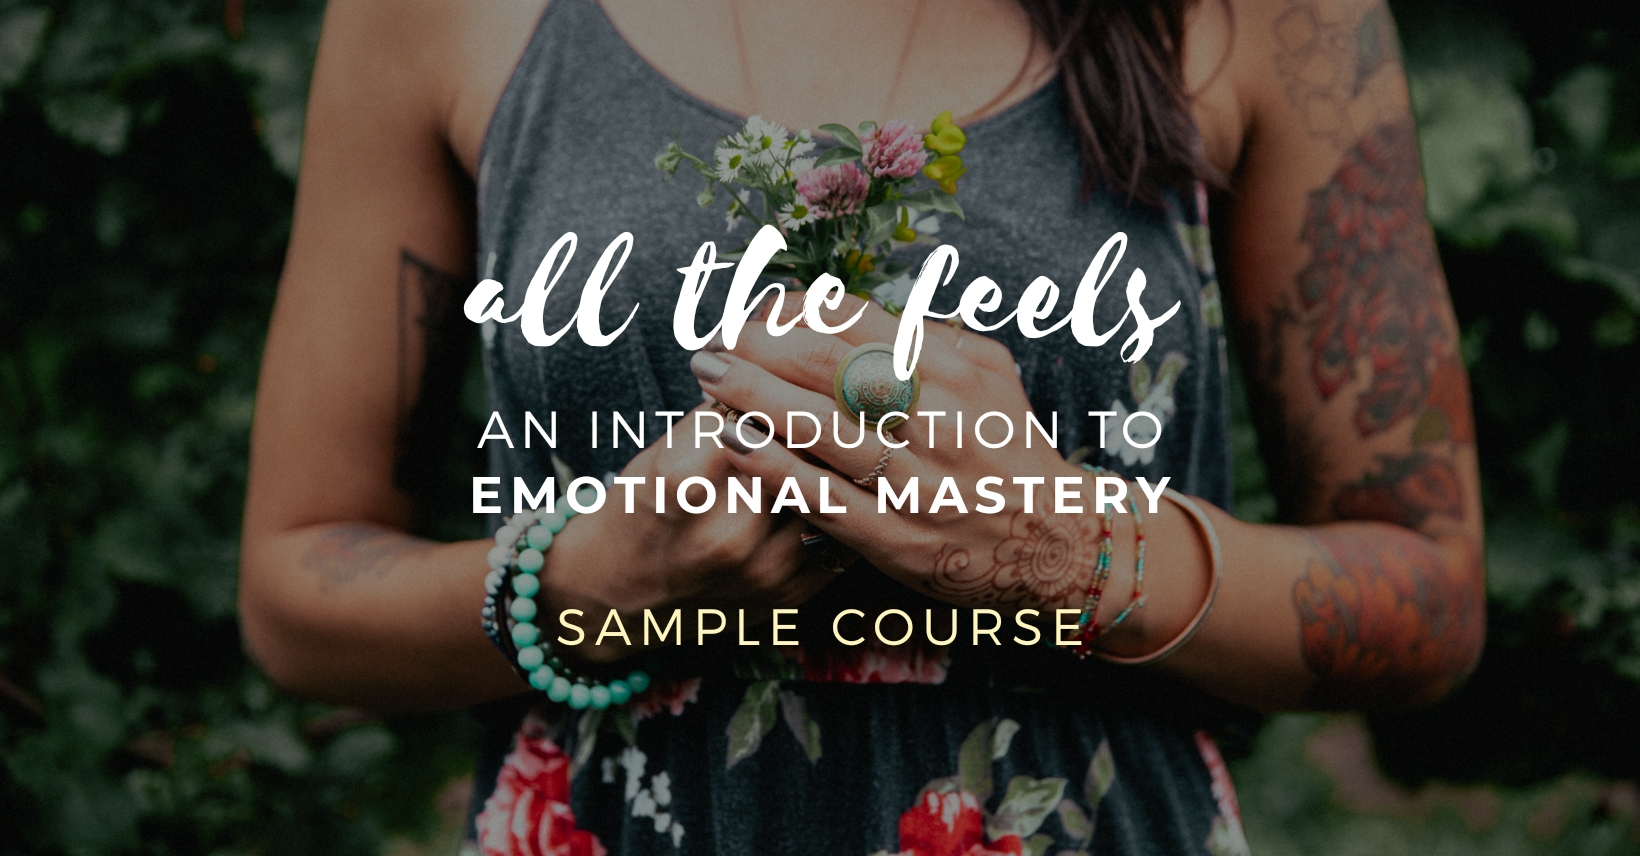 ALL THE FEELS: AN INTRODUCTION TO EMOTIONAL MASTERY (SAMPLE COURSE)